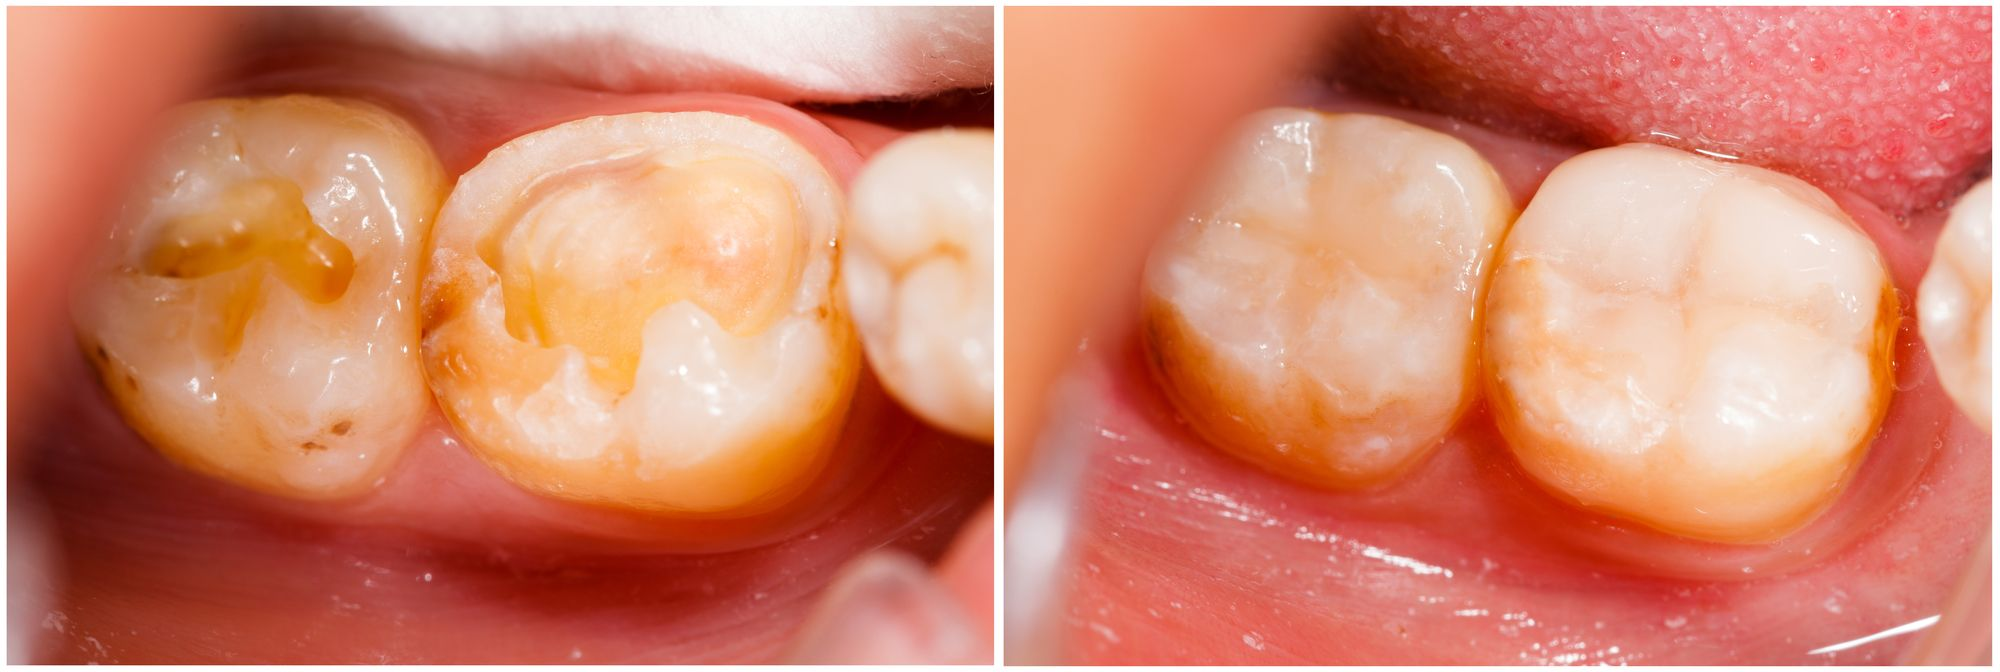 Tooth Colored Fillings What S The Big Deal Dental Fillings Tooth Colored Fillings Tooth Filling